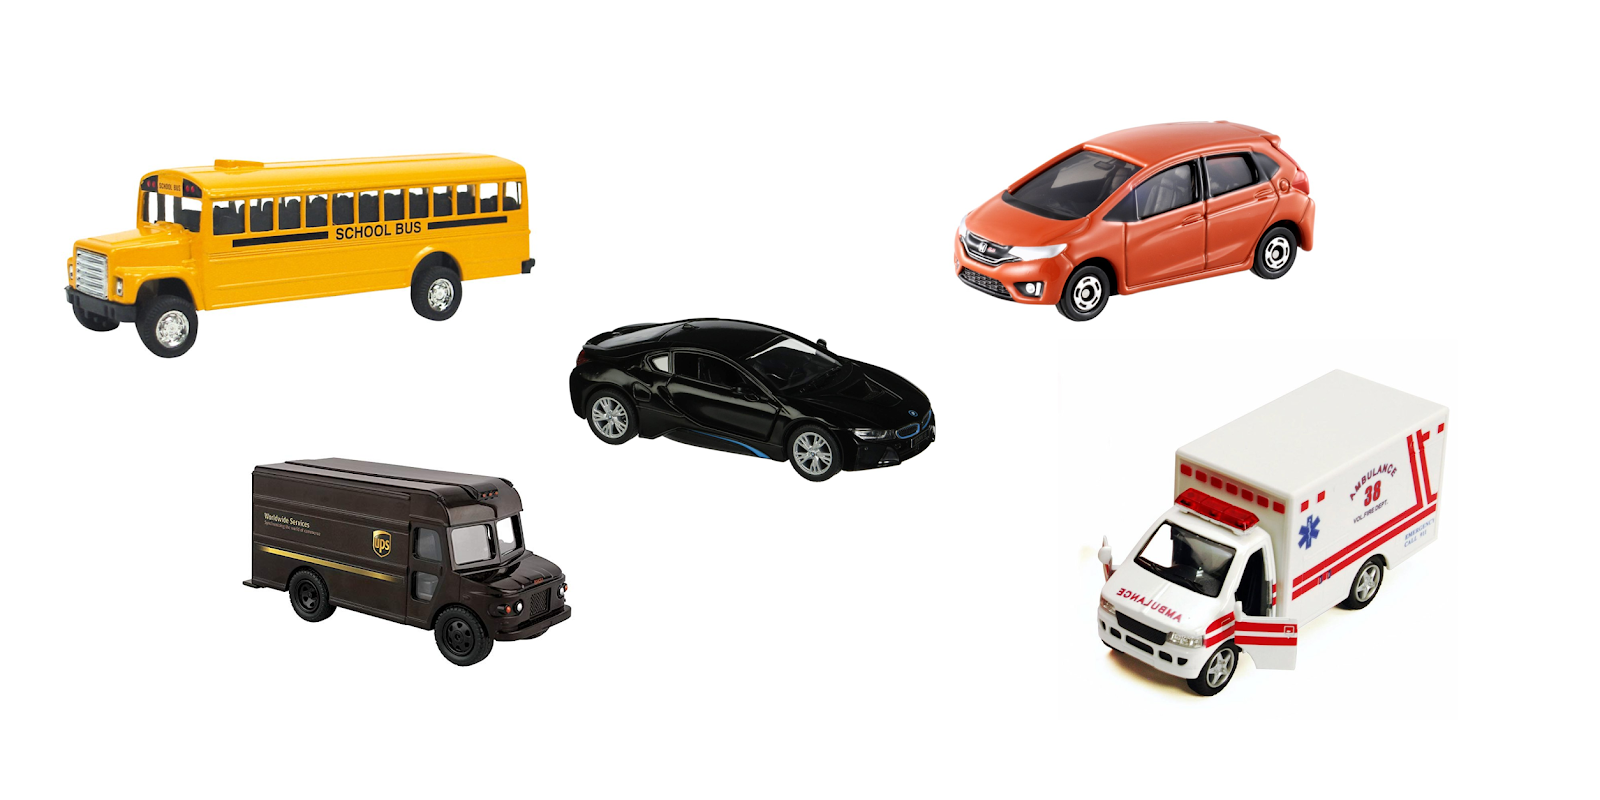 Montessori friendly model car examples - what to look for, and how to use them.